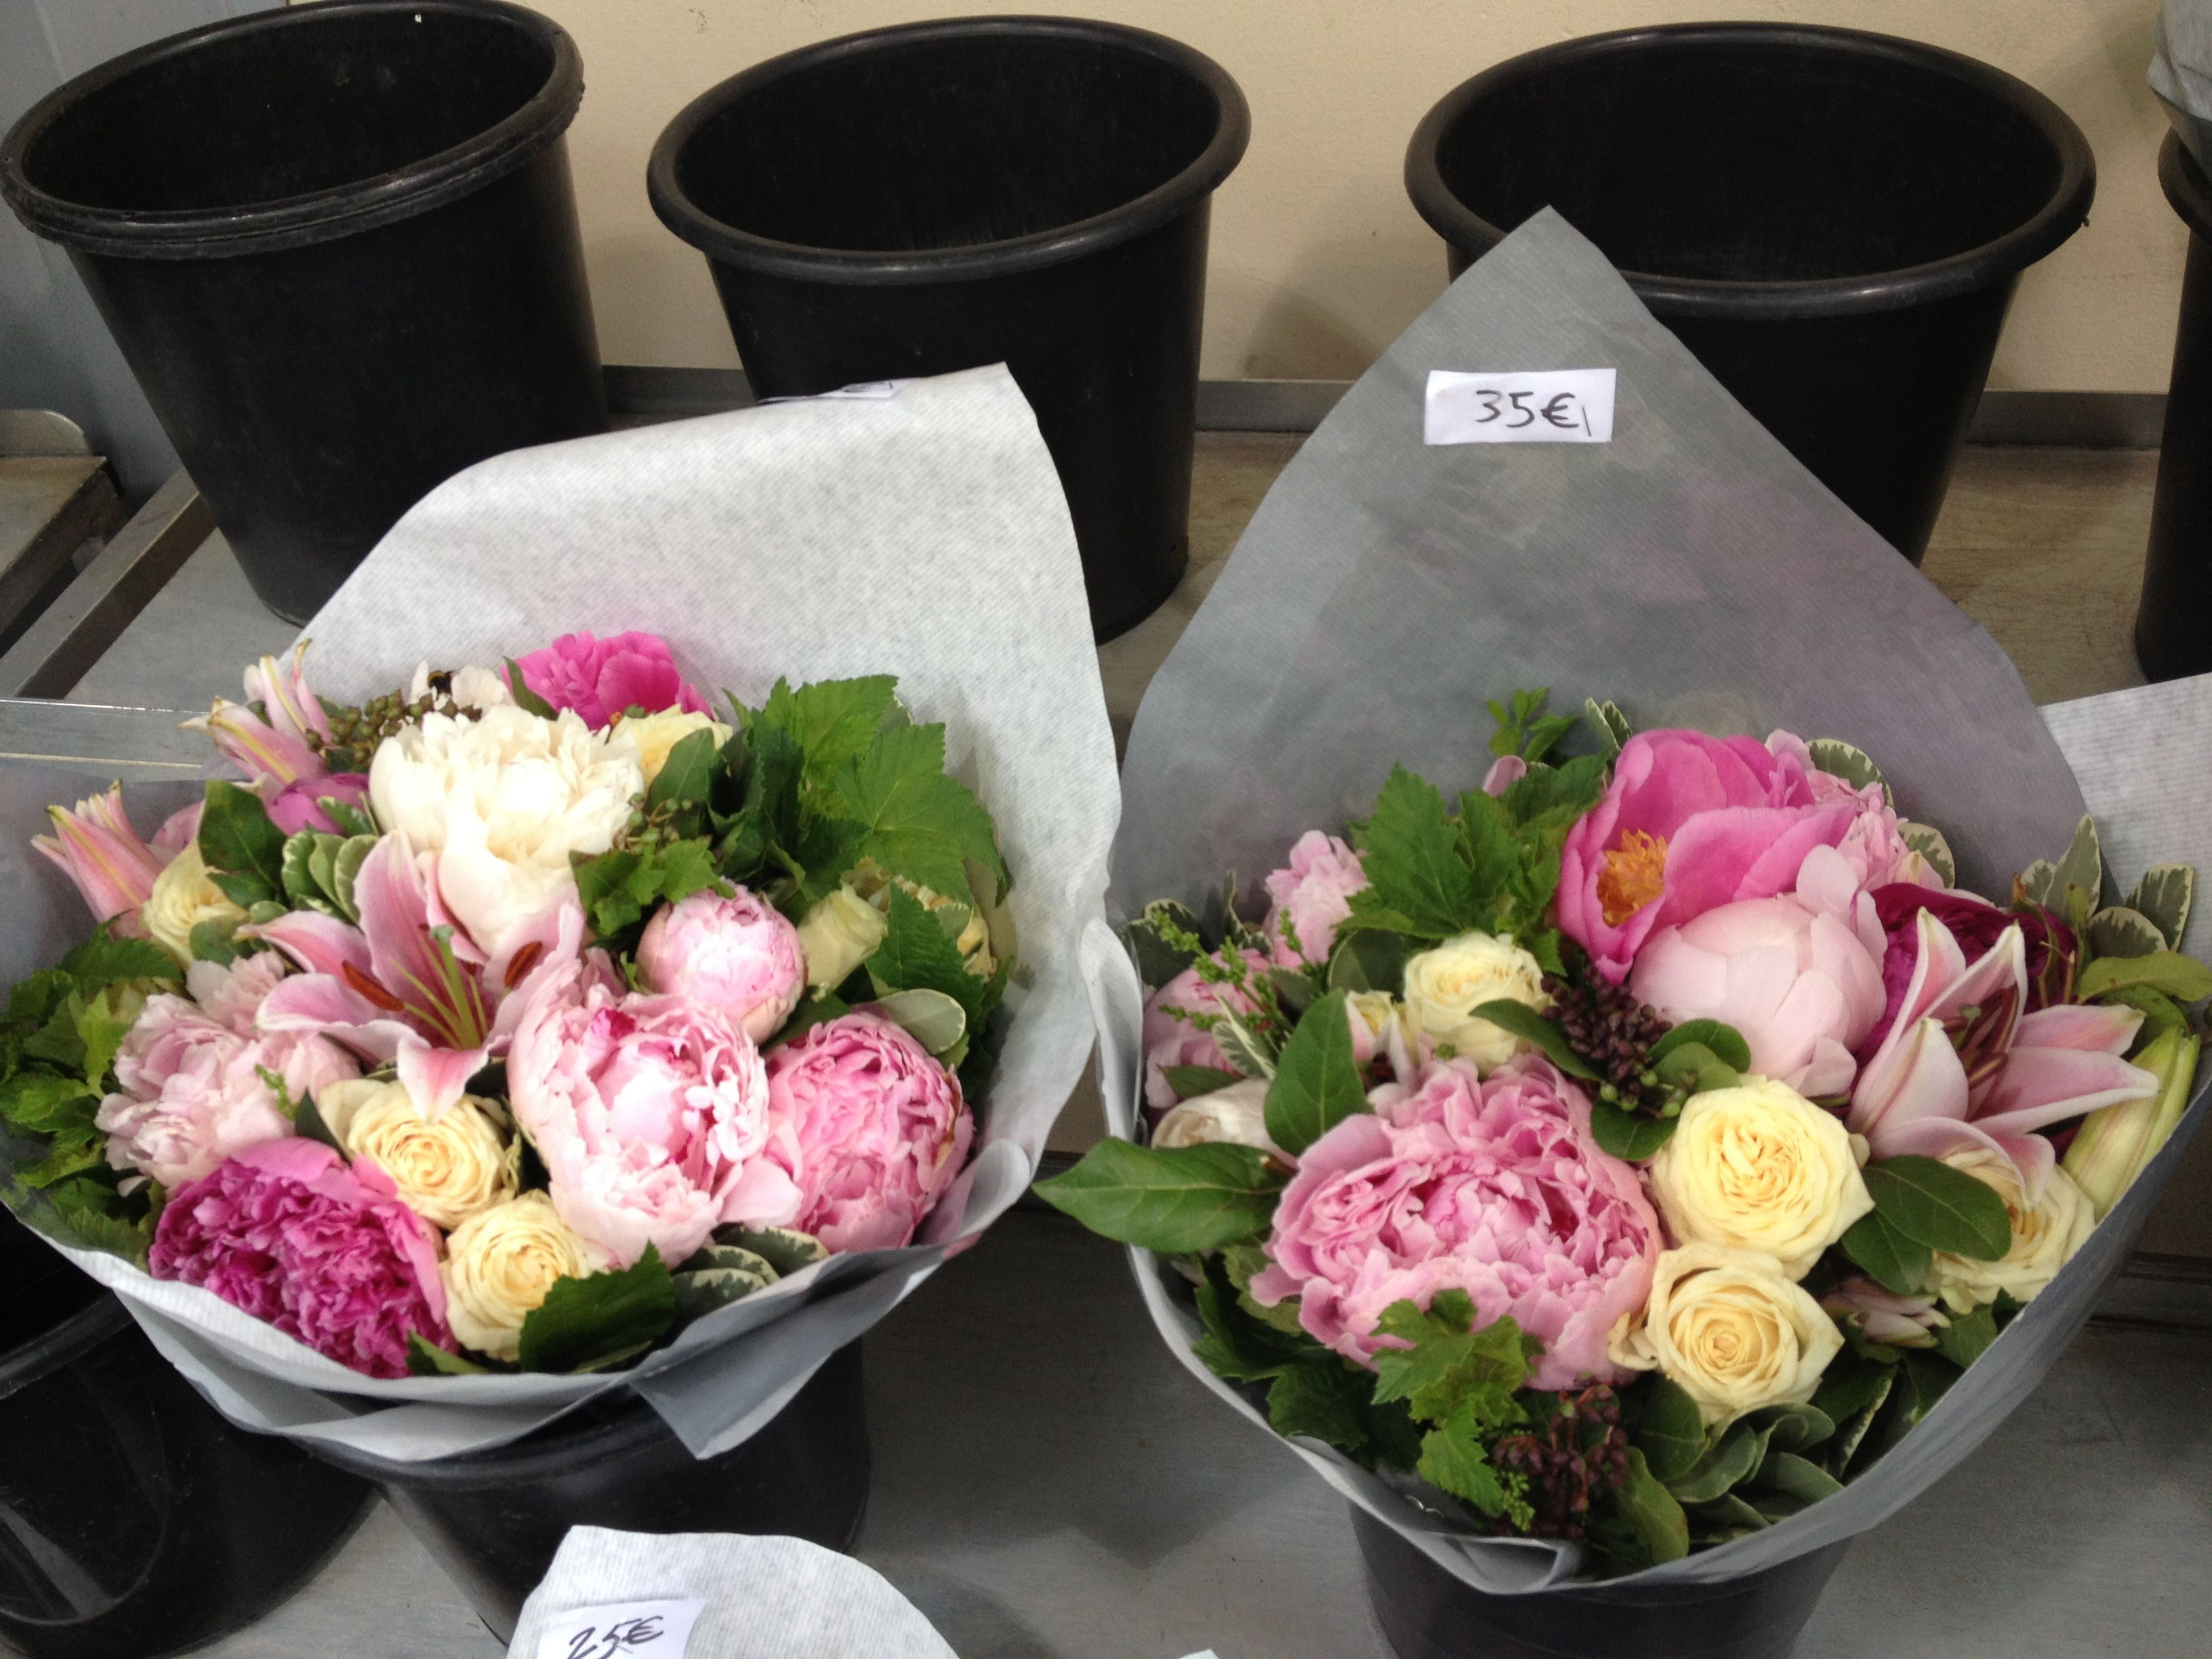 Pretty bouquets for sale in the area around the Champs-Elysees